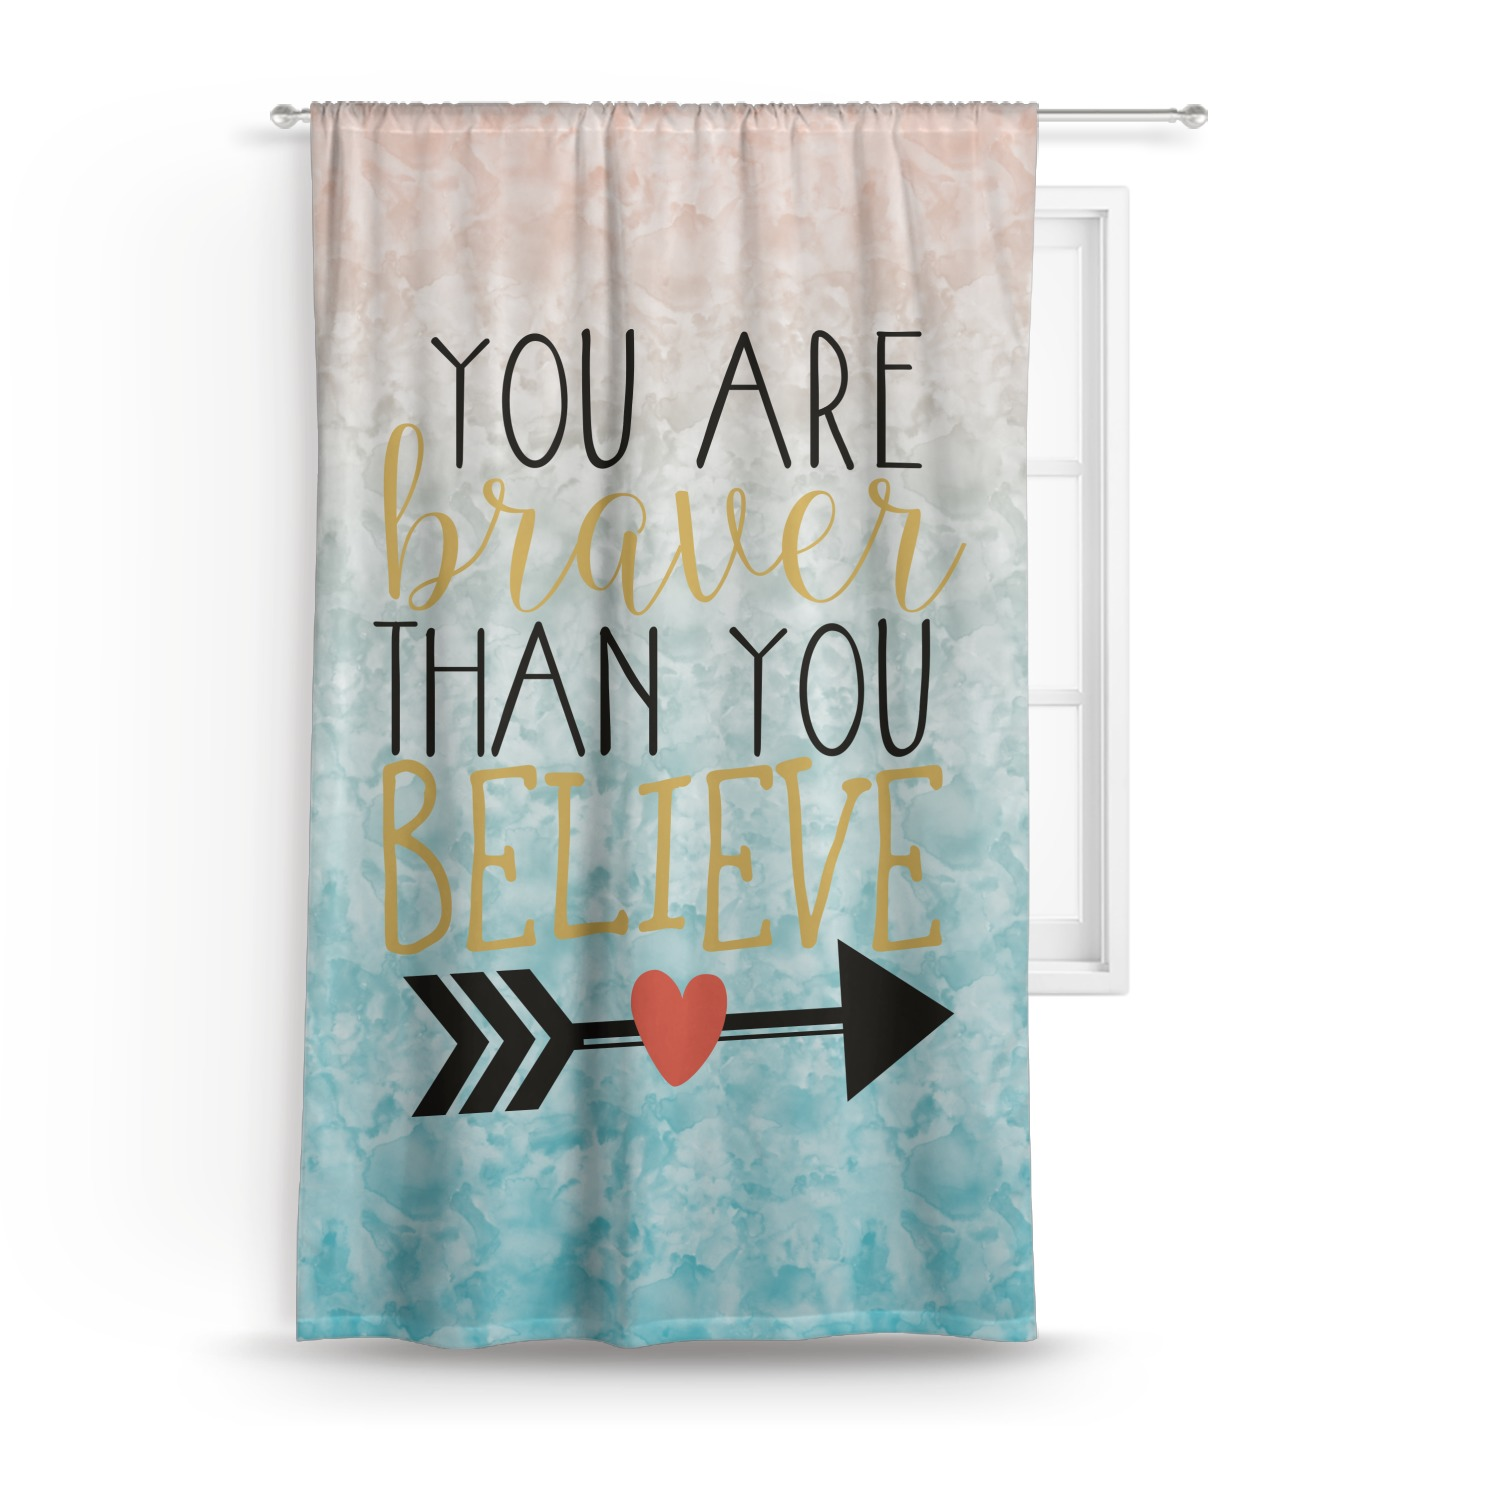 Inspirational Quotes Custom Sized Curtain Panel